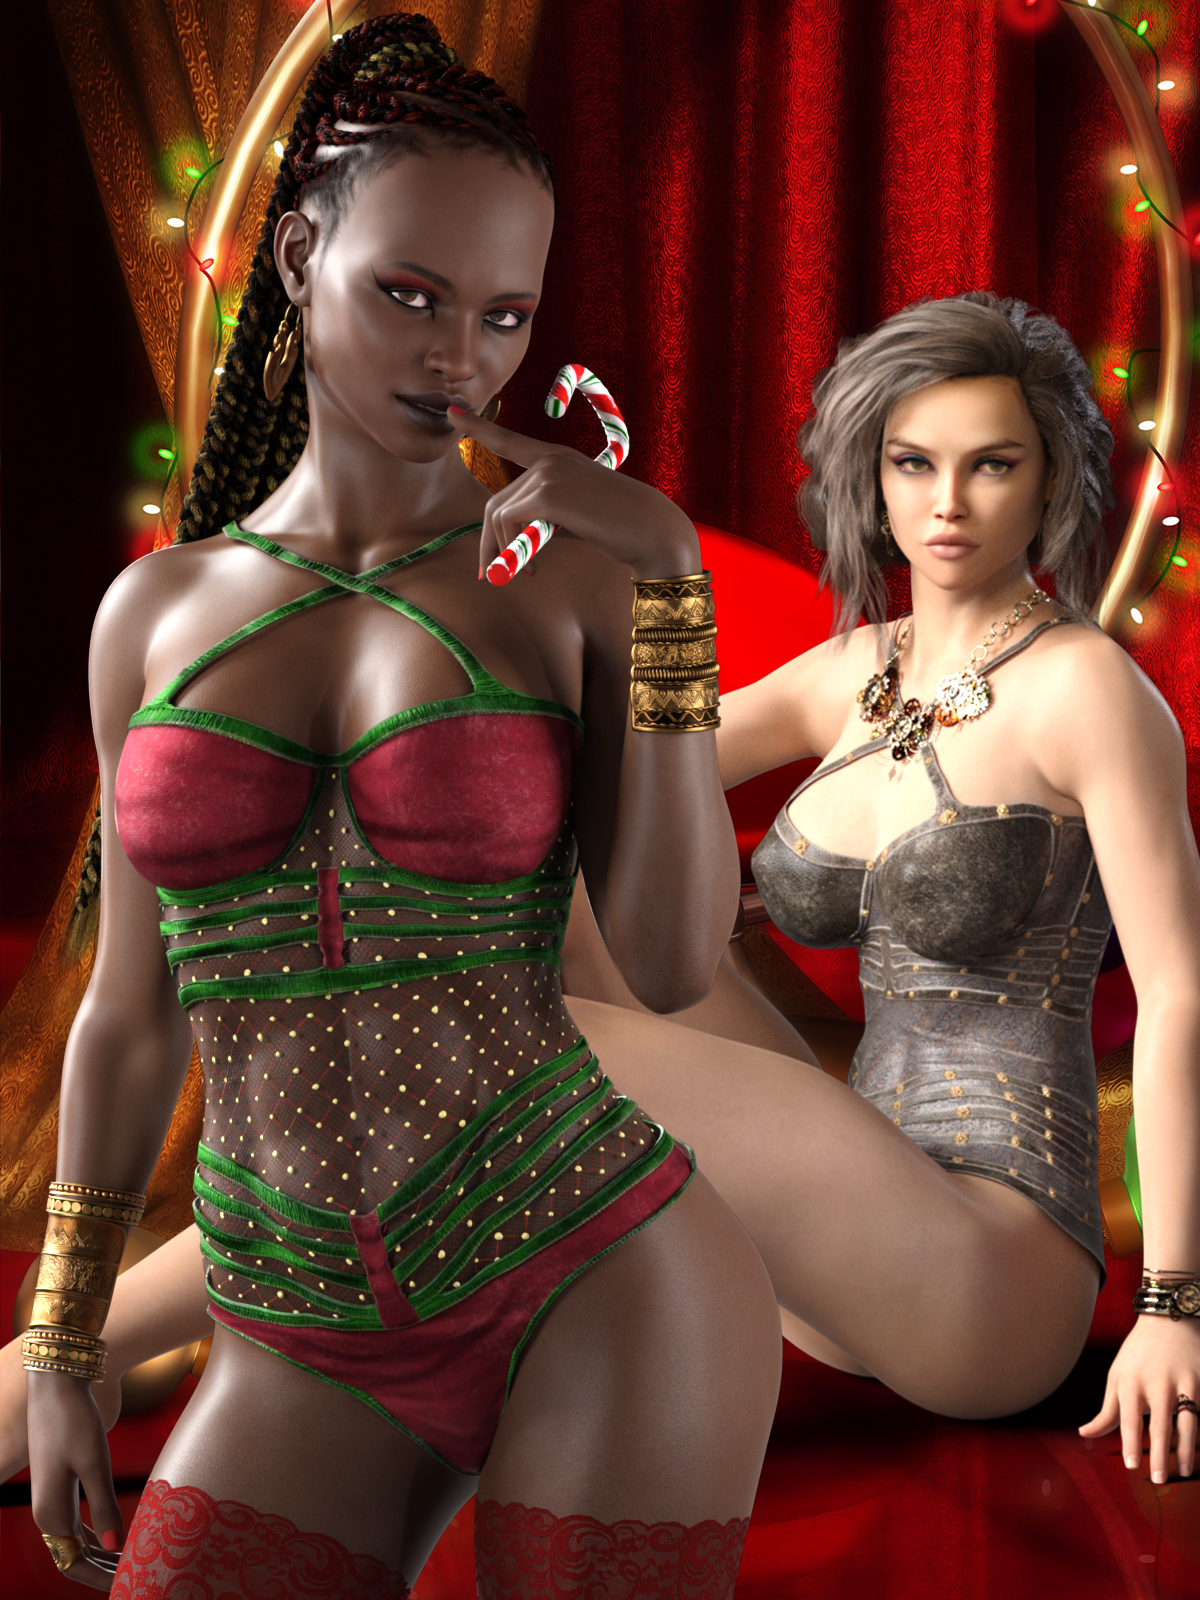 Holiday Cheer by Deecey